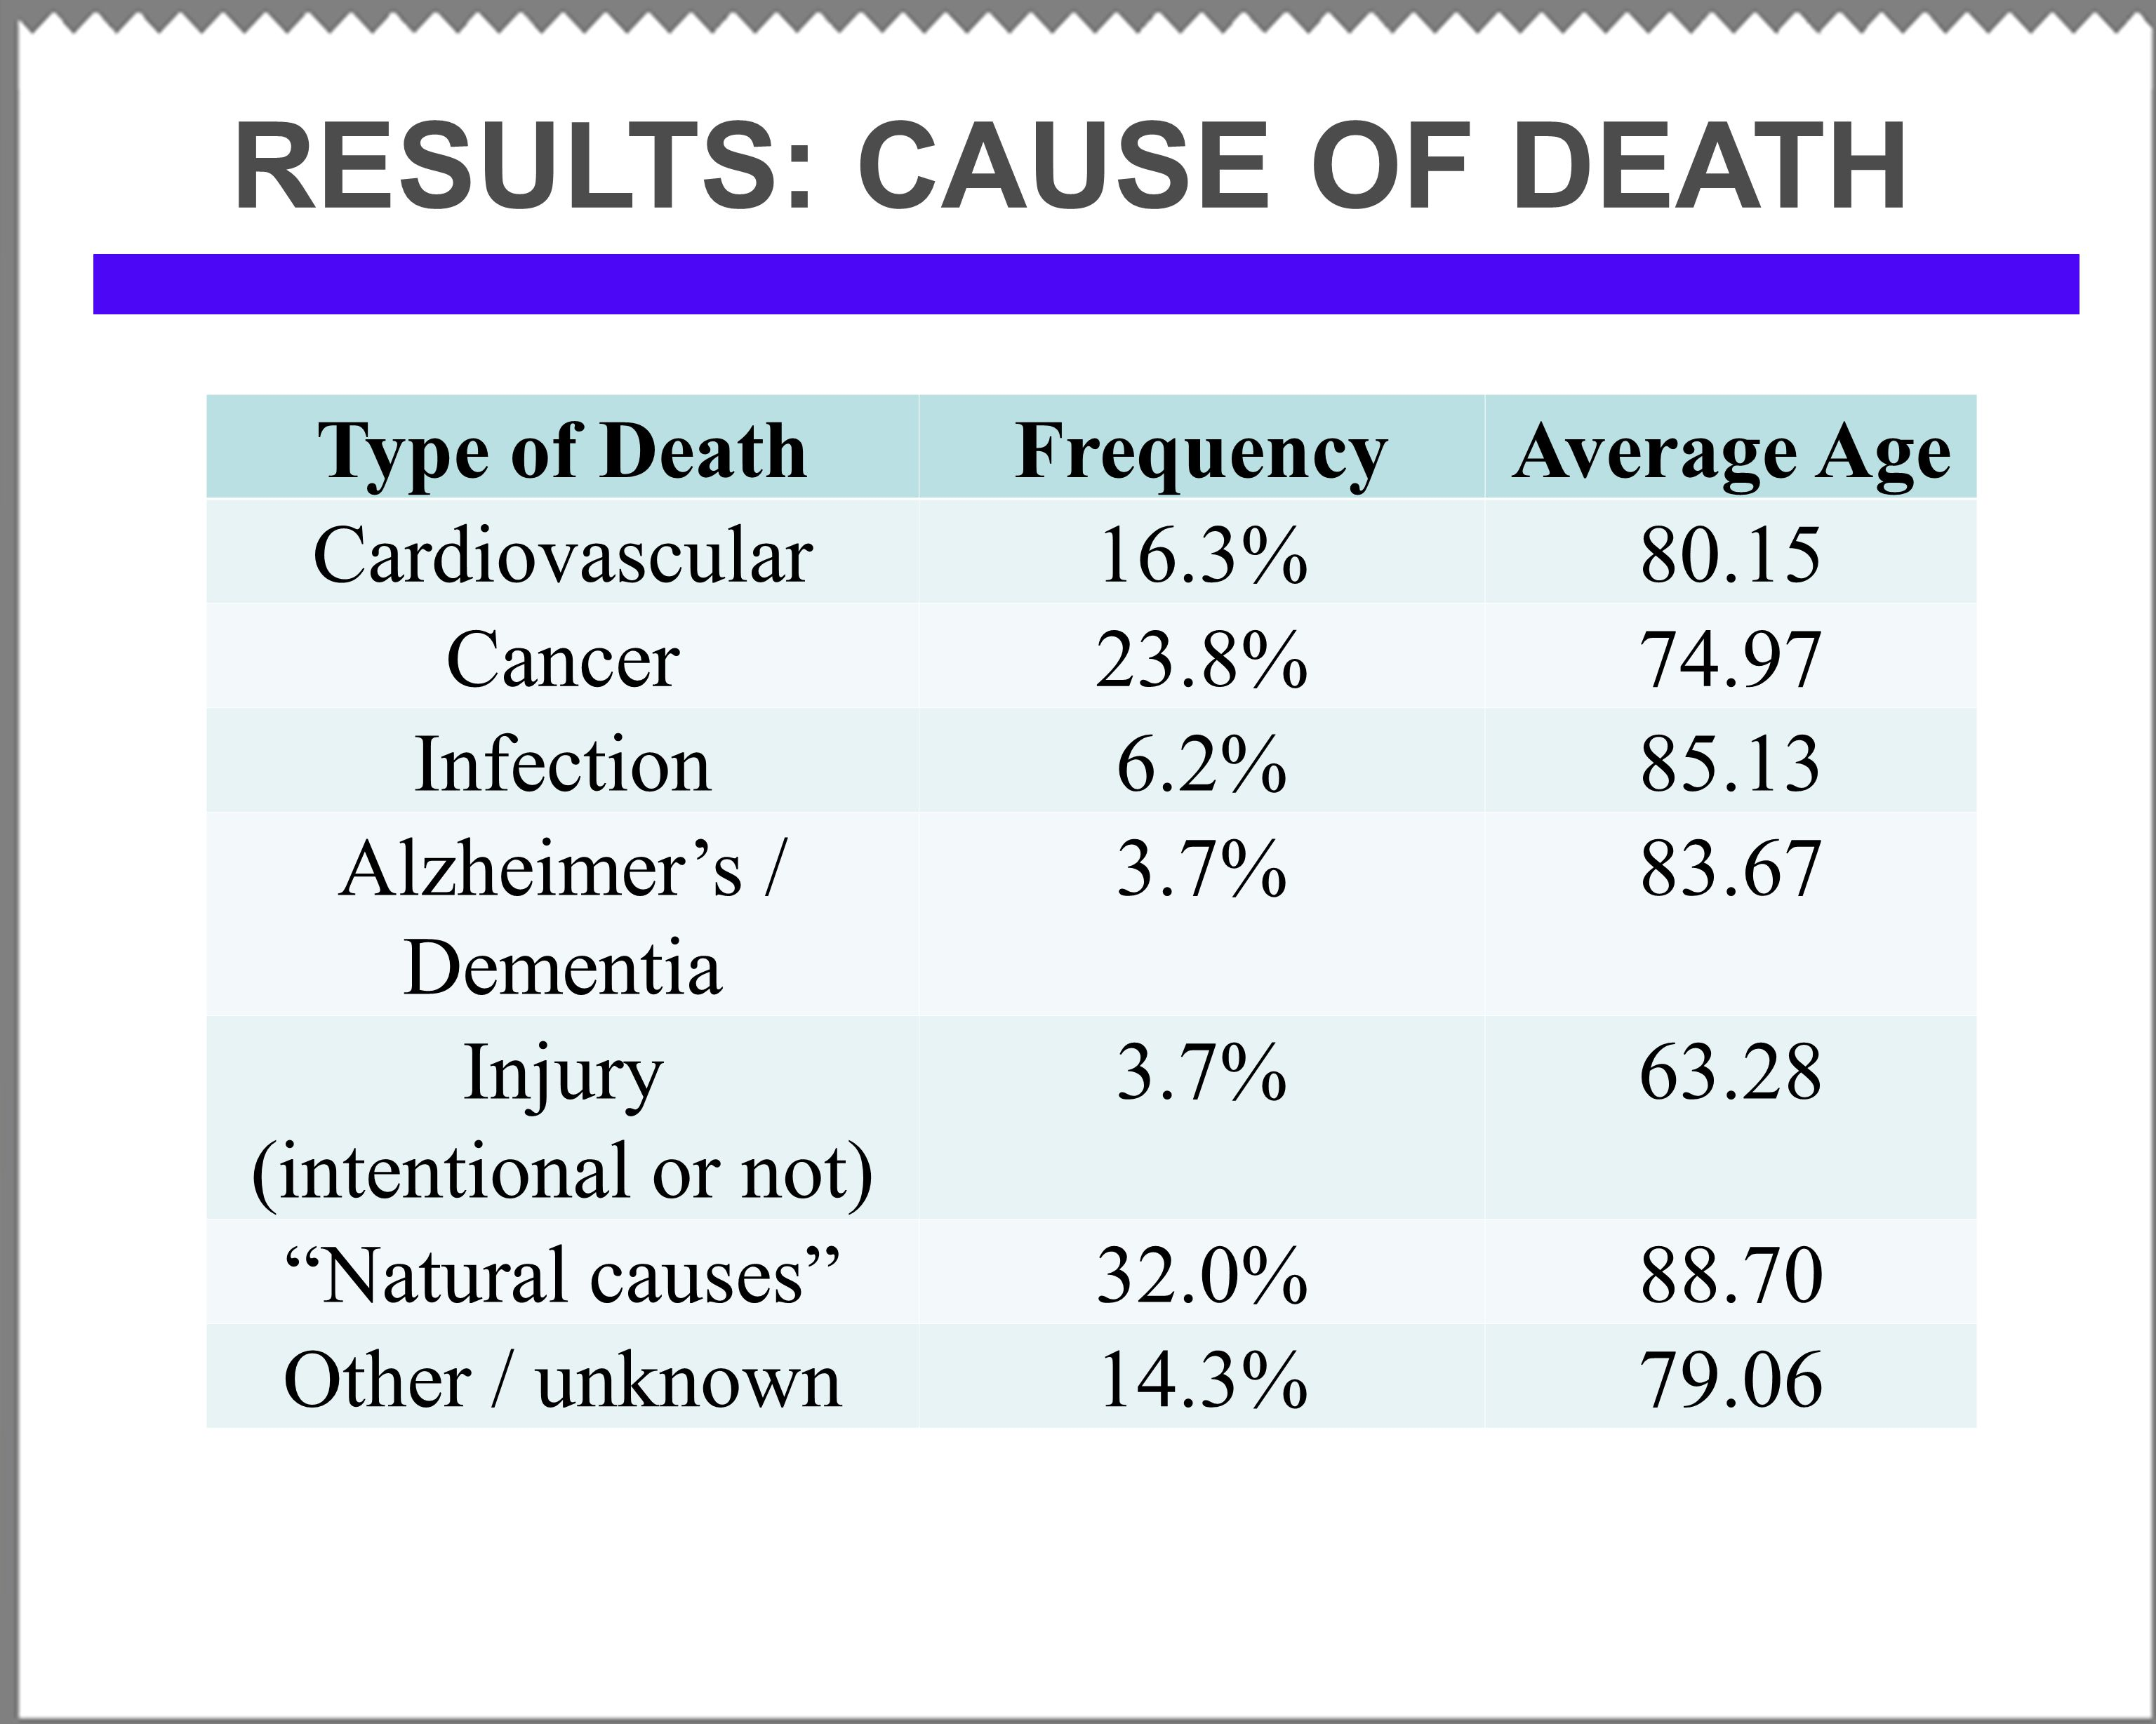 RESULTS: CAUSE OF DEATH Type of DeathFrequencyAverage Age Cardiovascular16.3%80.15 Cancer23.8%74.97 Infection6.2%85.13 Alzheimer's / Dementia 3.7%83.67 Injury (intentional or not) 3.7%63.28 Natural causes 32.0%88.70 Other / unknown14.3%79.06